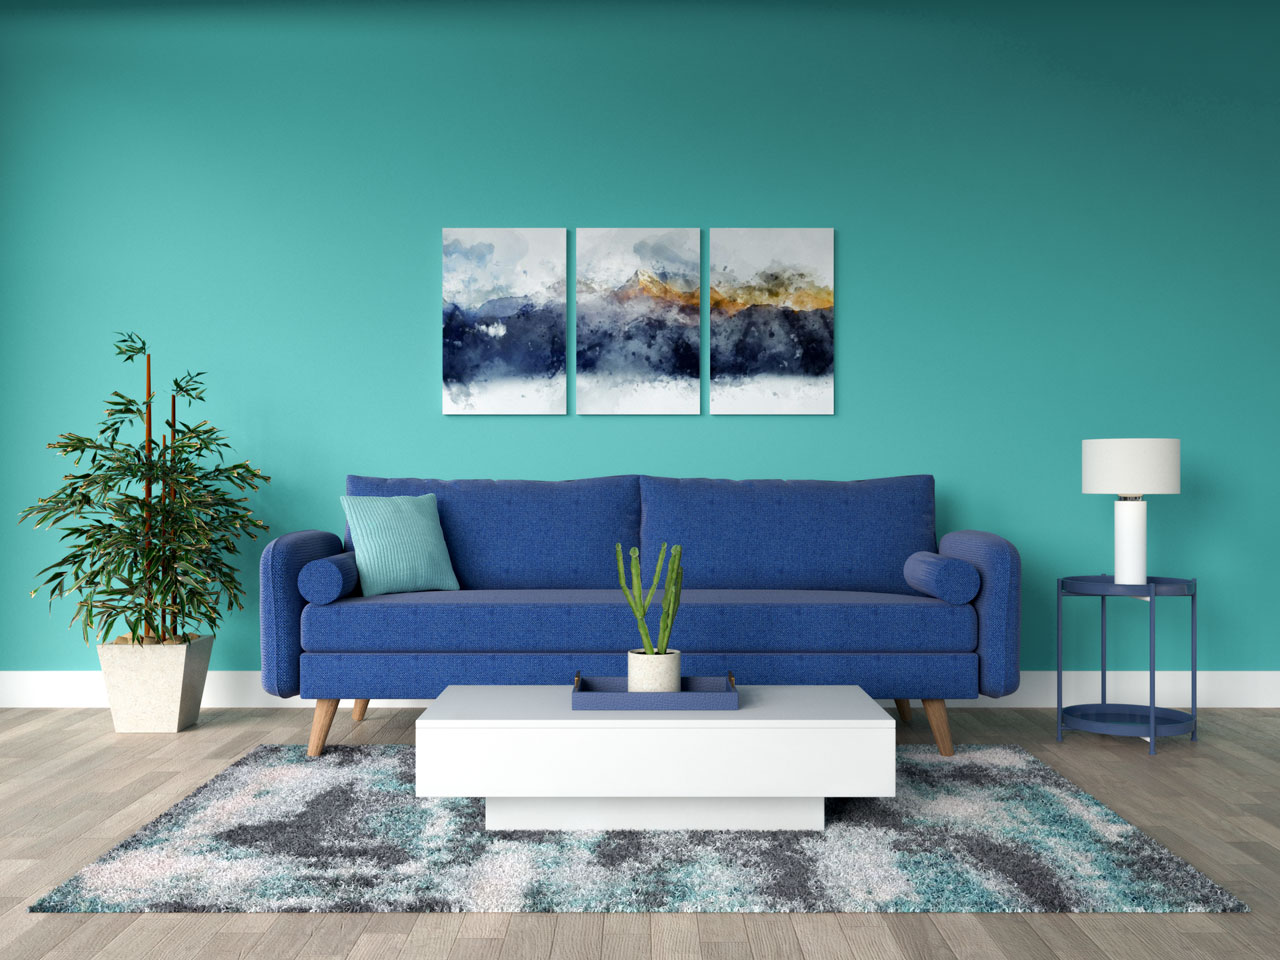 Royal blue furnishings with teal walls